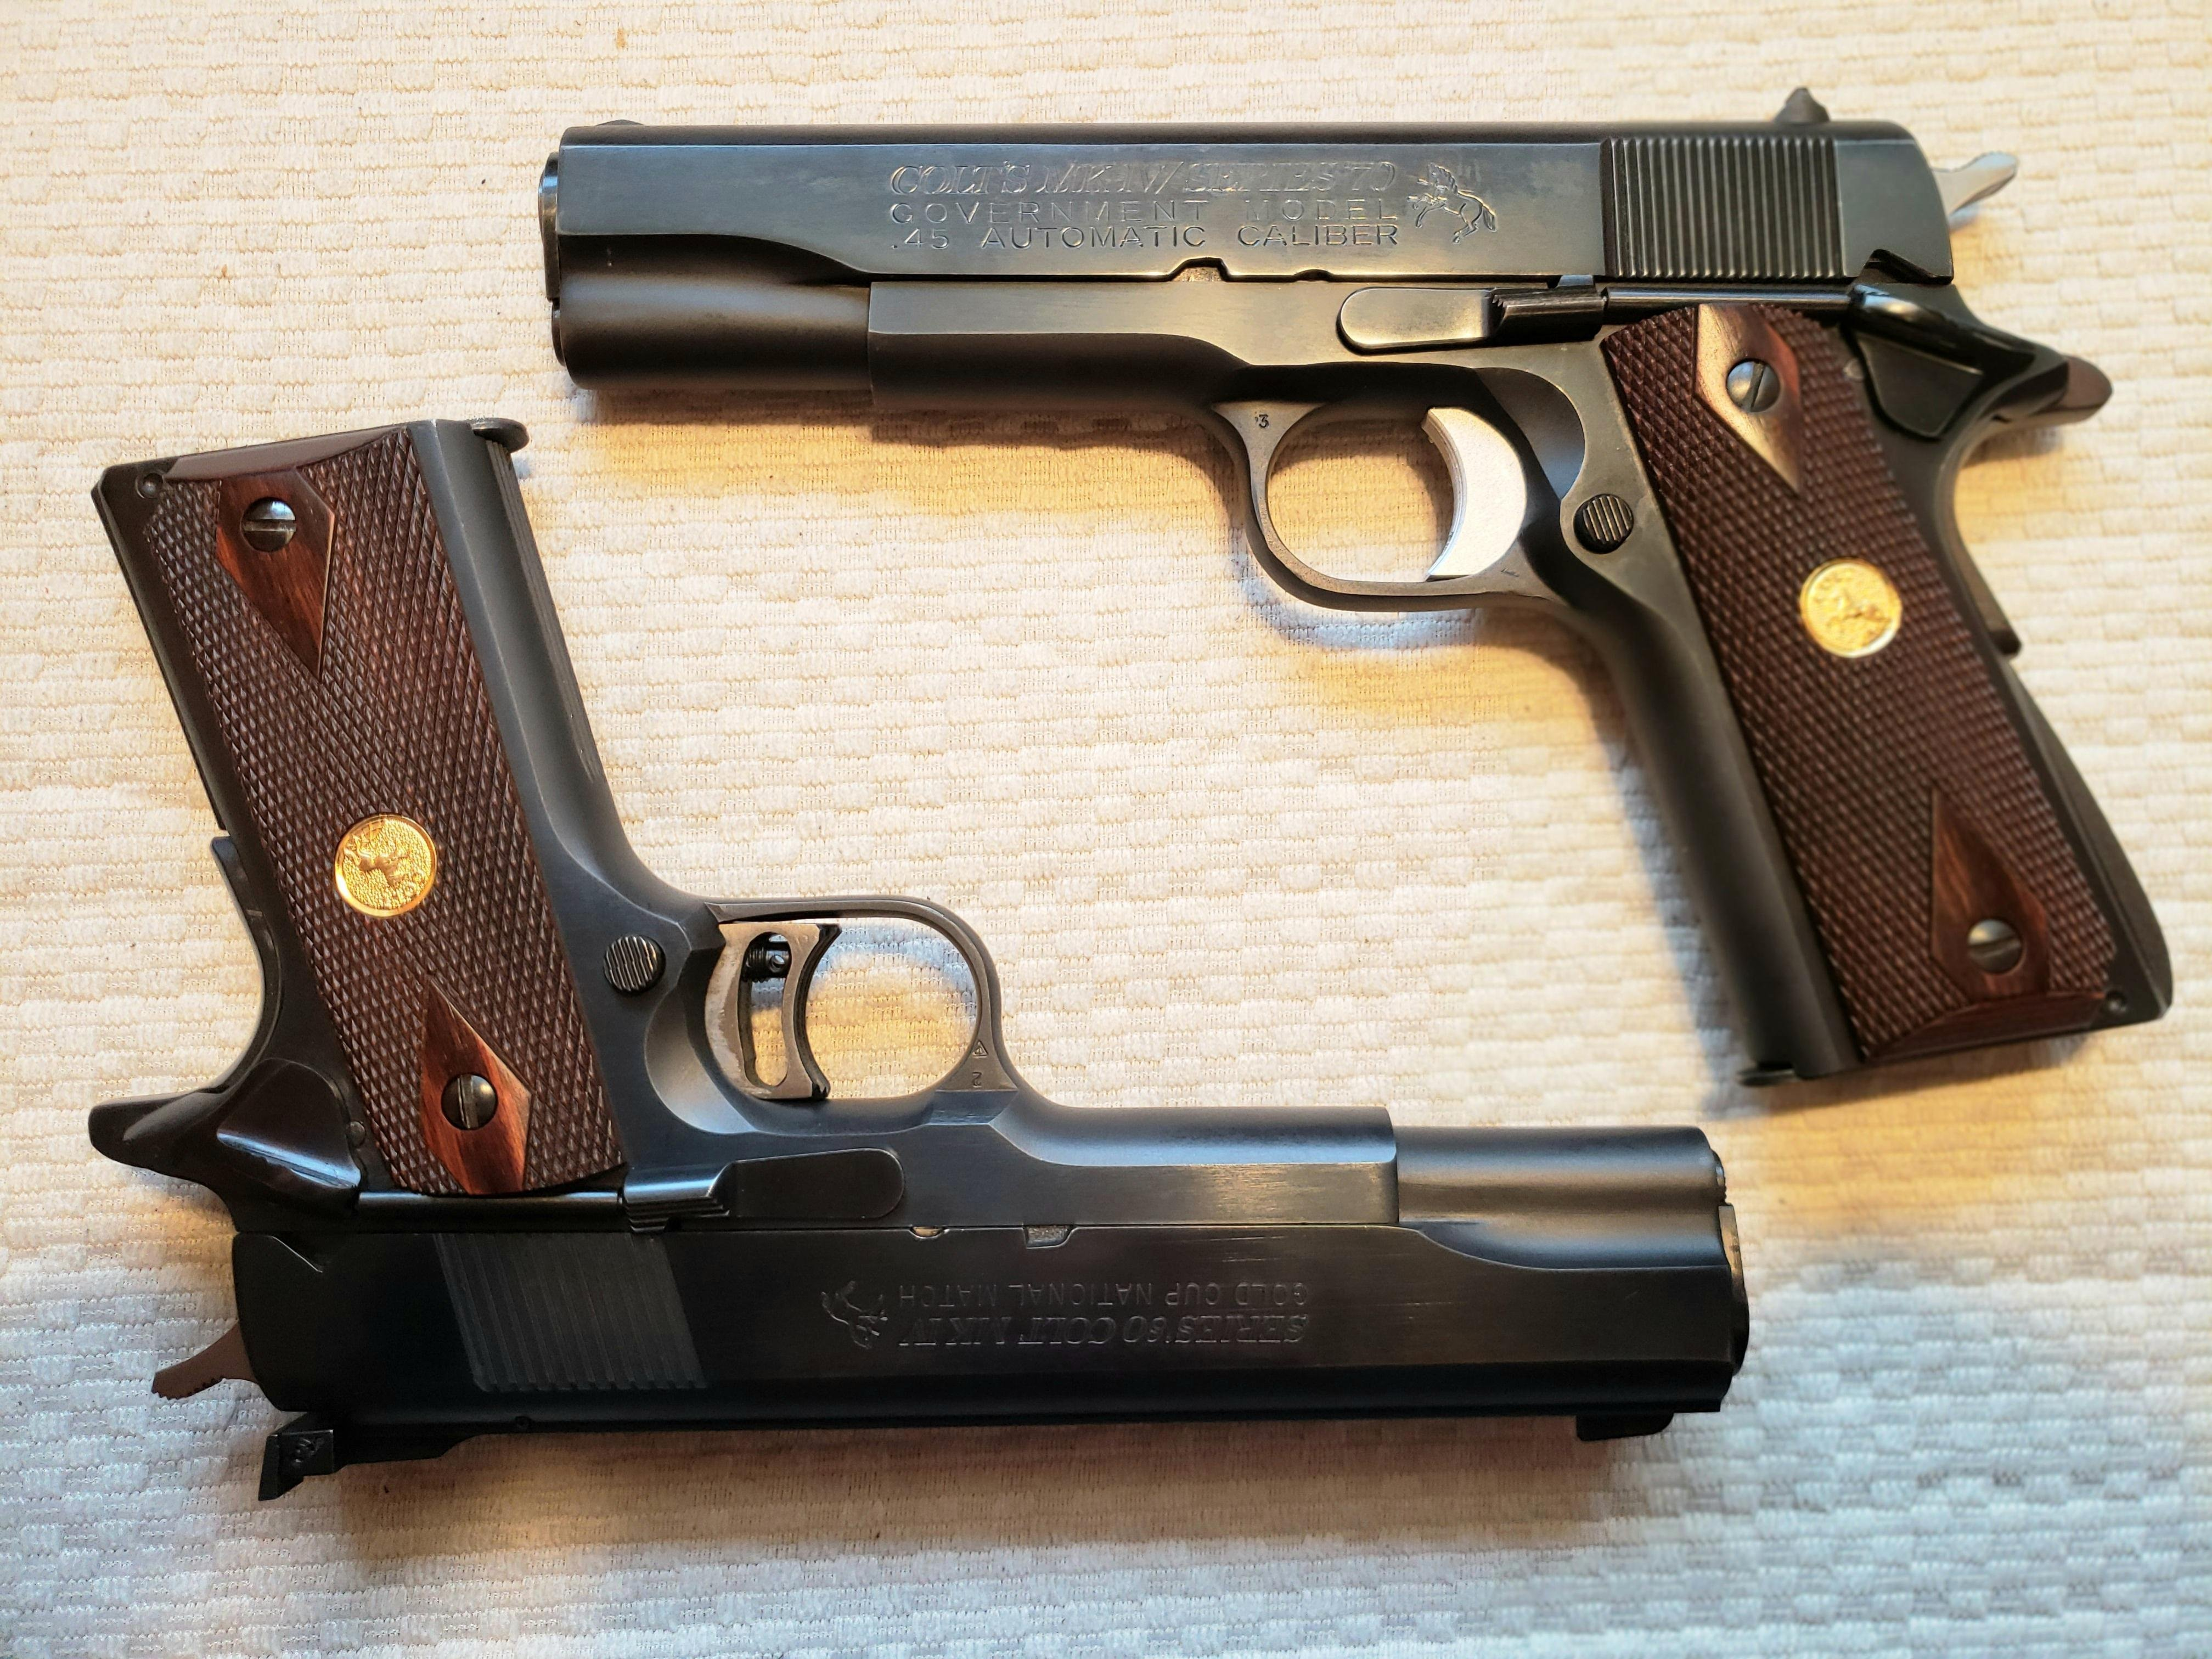 Click image for larger version  Name:20190324_093415 Colt S 70 Colt Gold cup.jpg Views:18 Size:1.23 MB ID:568910